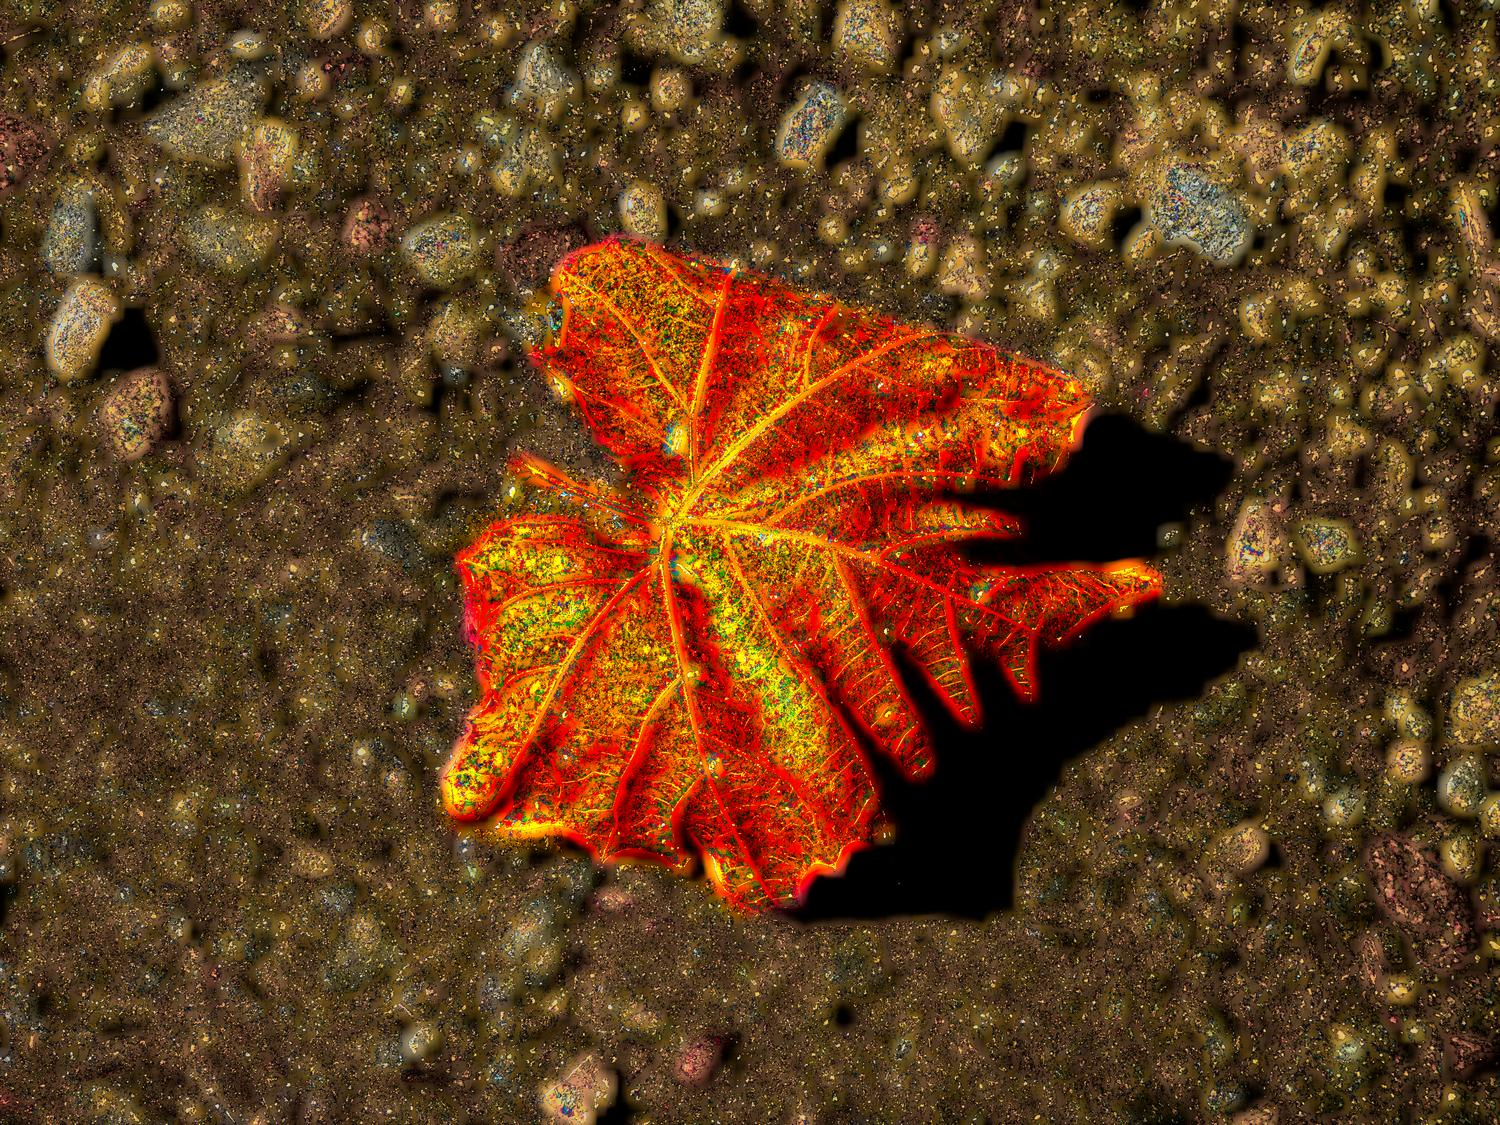 fall leaf with inner glow - Glowing leaf in the fall</Center><p></p> - Techno-Impressionist Museum - Techno-Impressionism - art - beautiful - photo photography picture - by Tony Karp